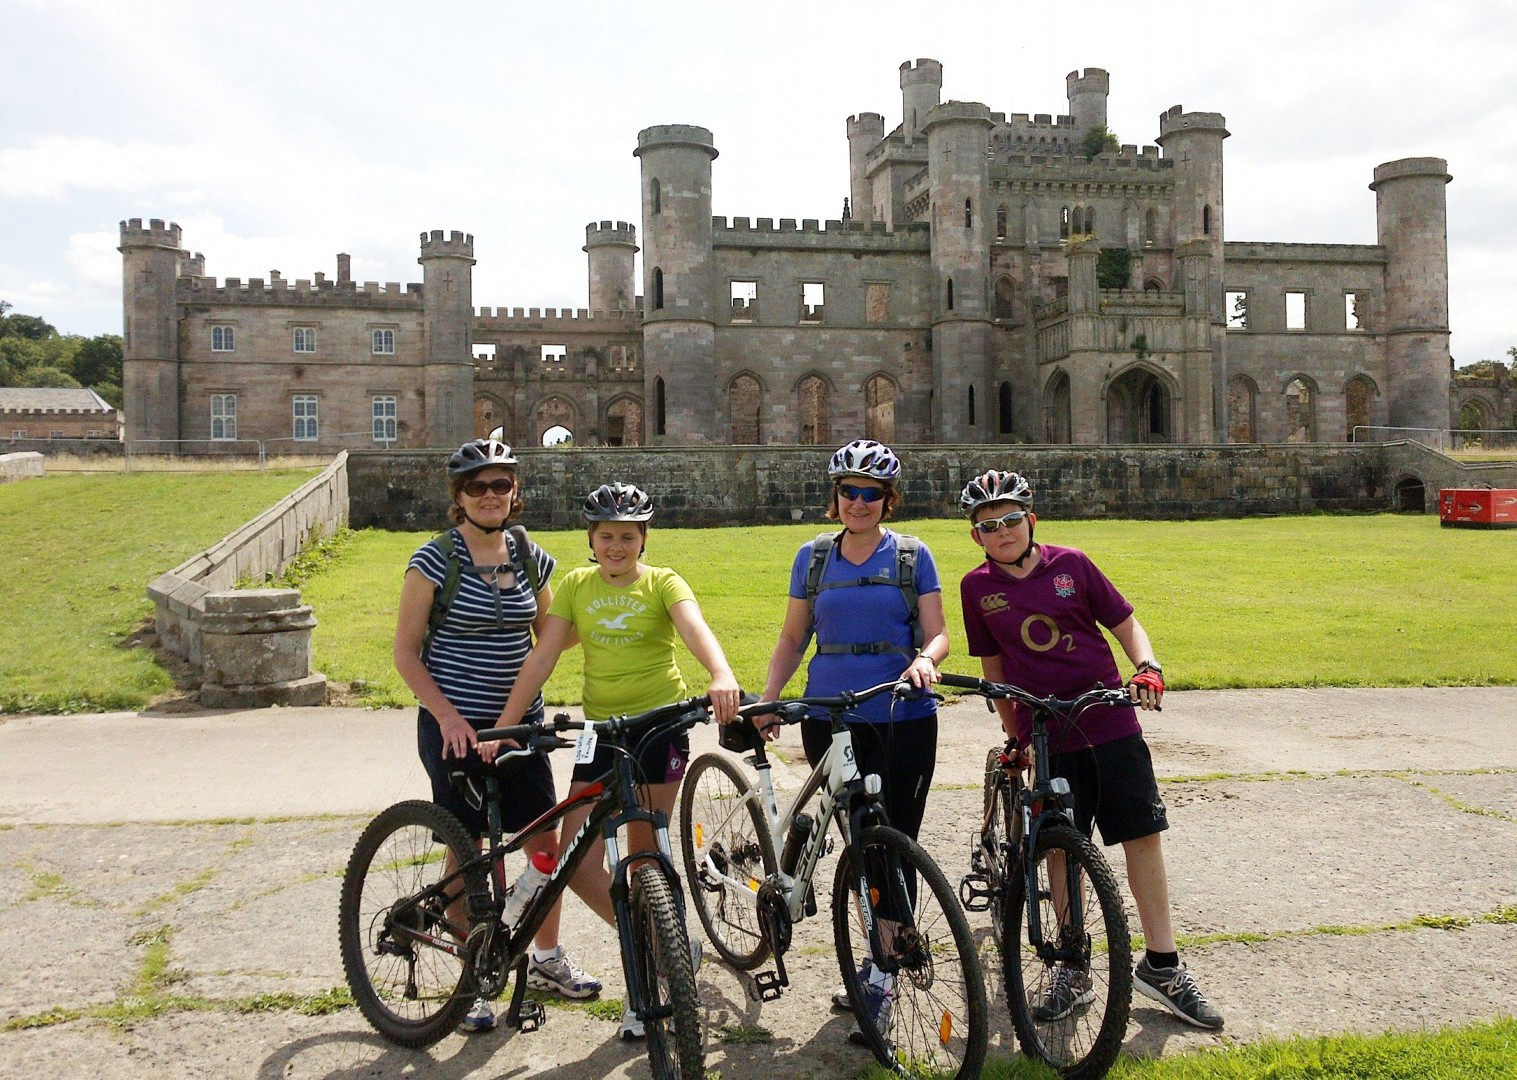 castles-uk-lake-district-guided-cycling-holiday.jpg - UK - Lake District - Guided Family Bike Skills - Family Cycling